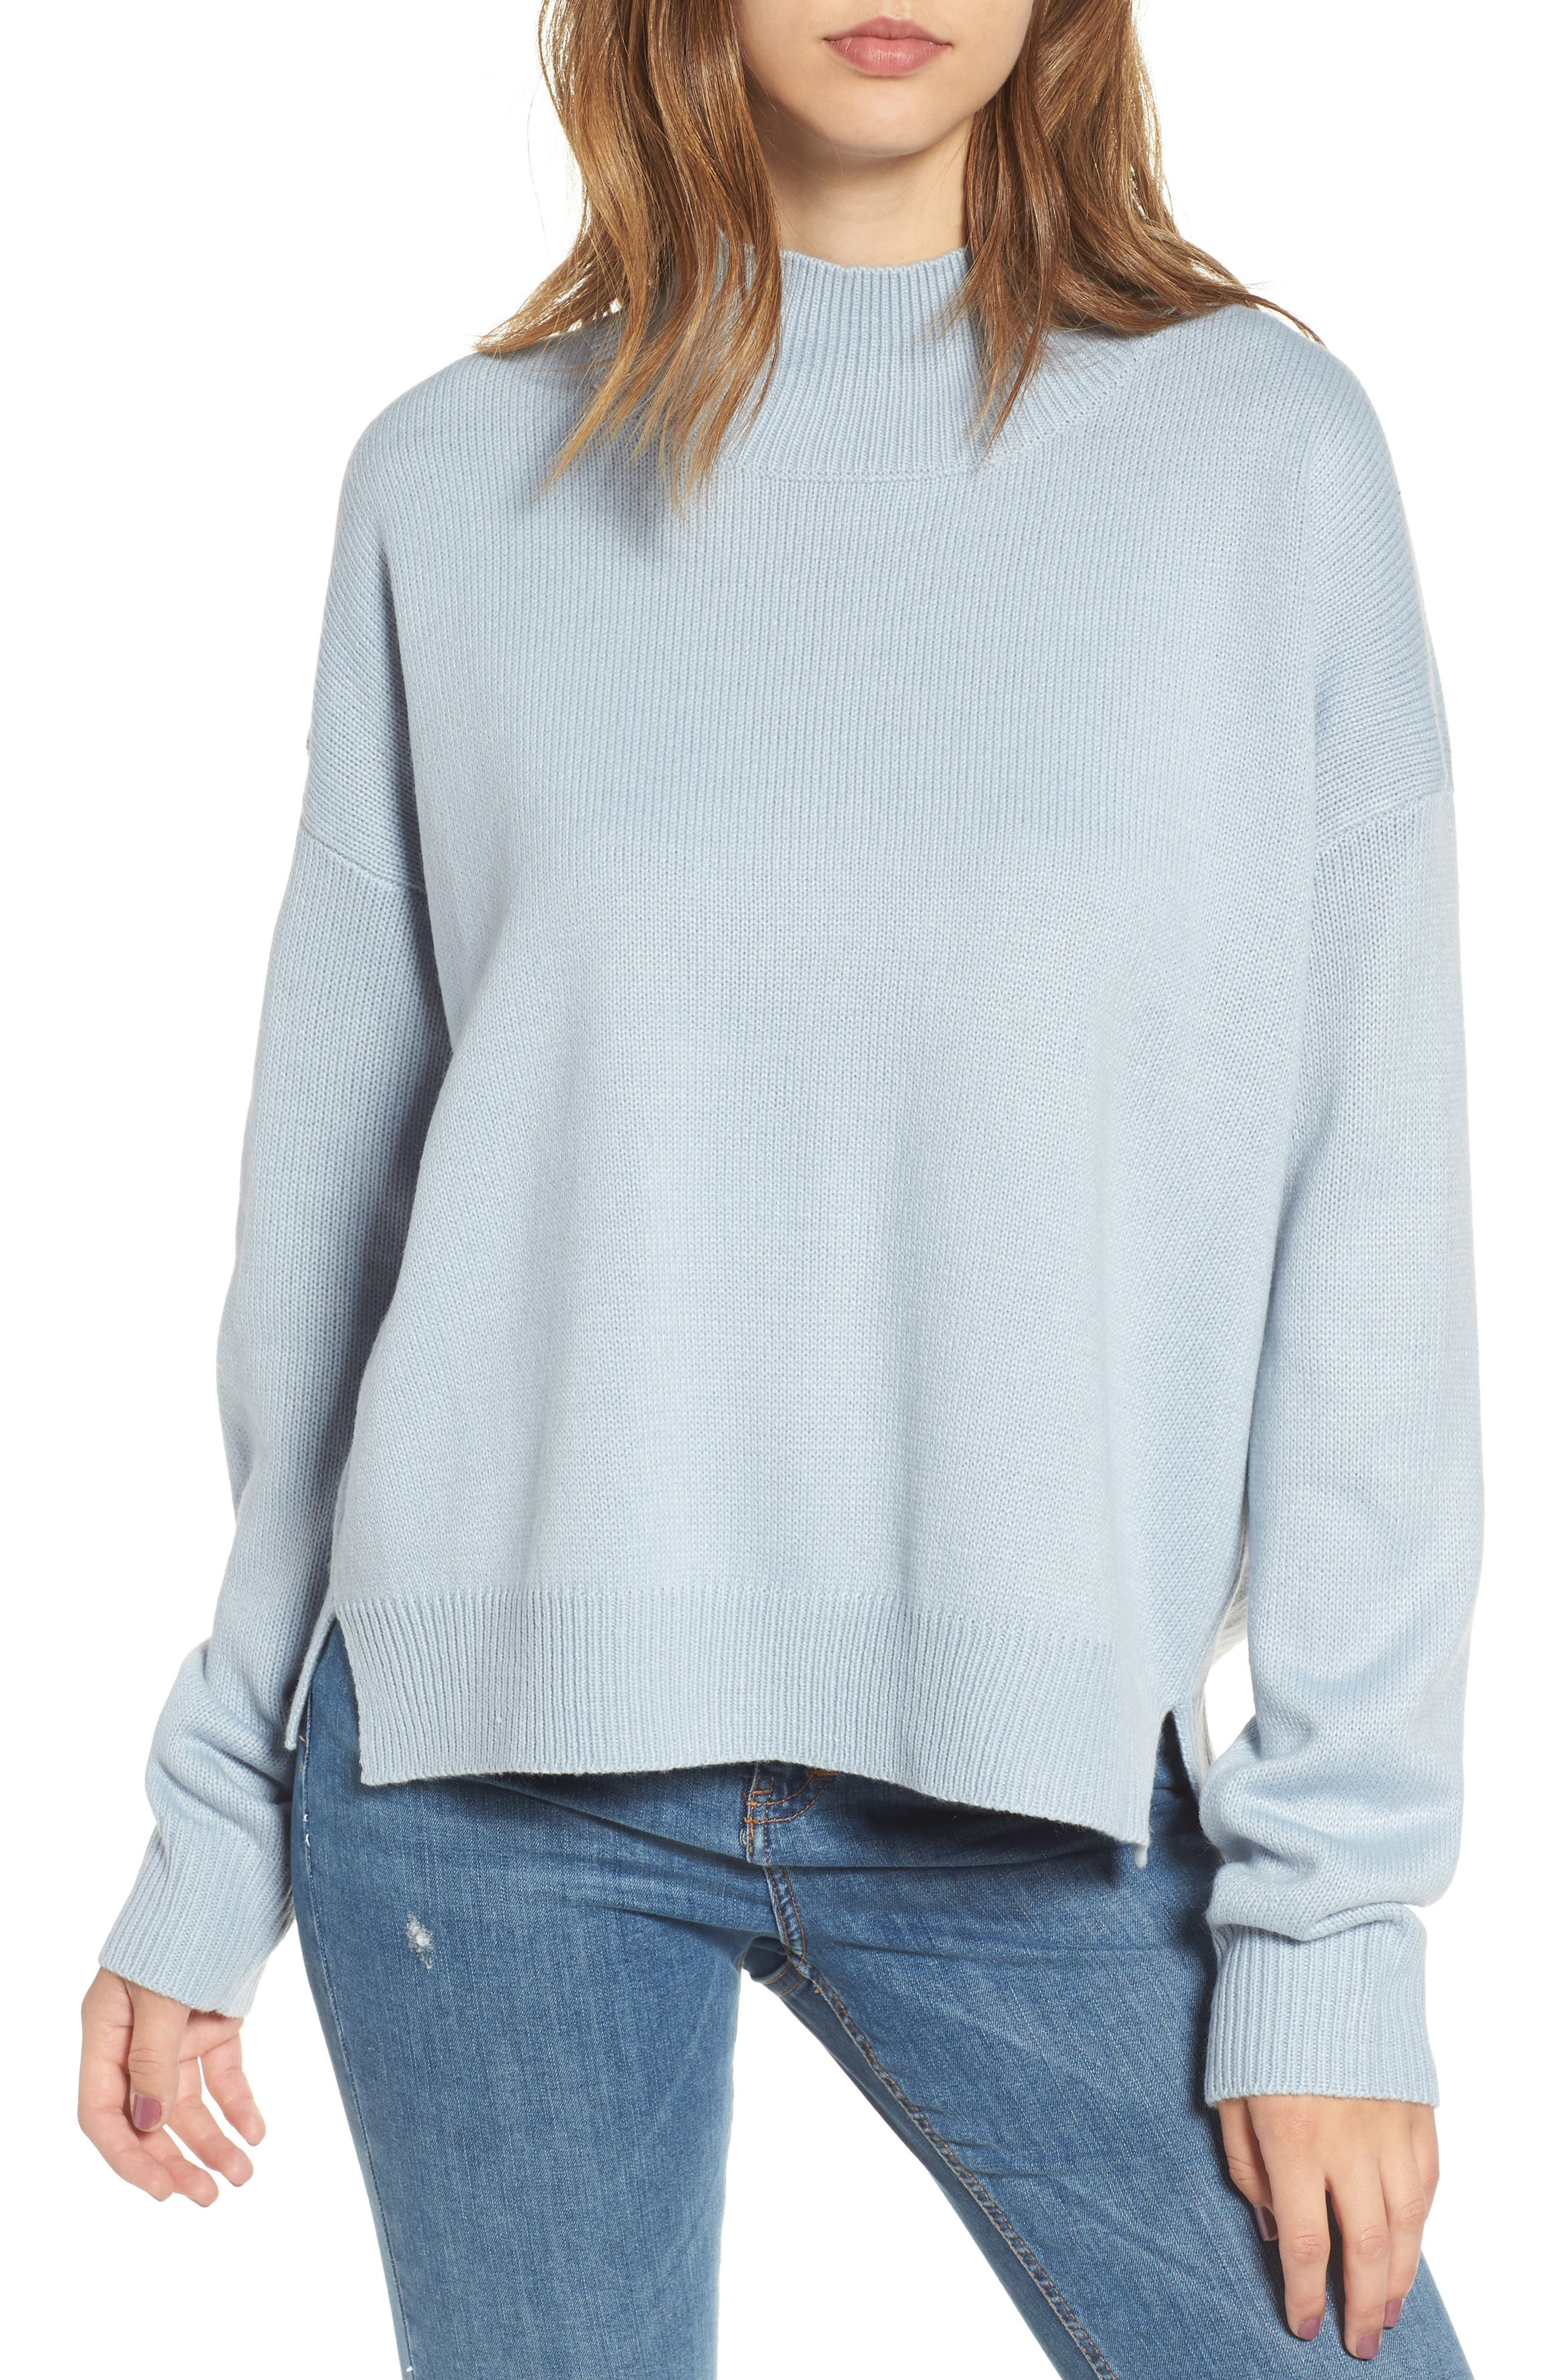 Oversize Sweater,                             Main thumbnail 1, color,                             400